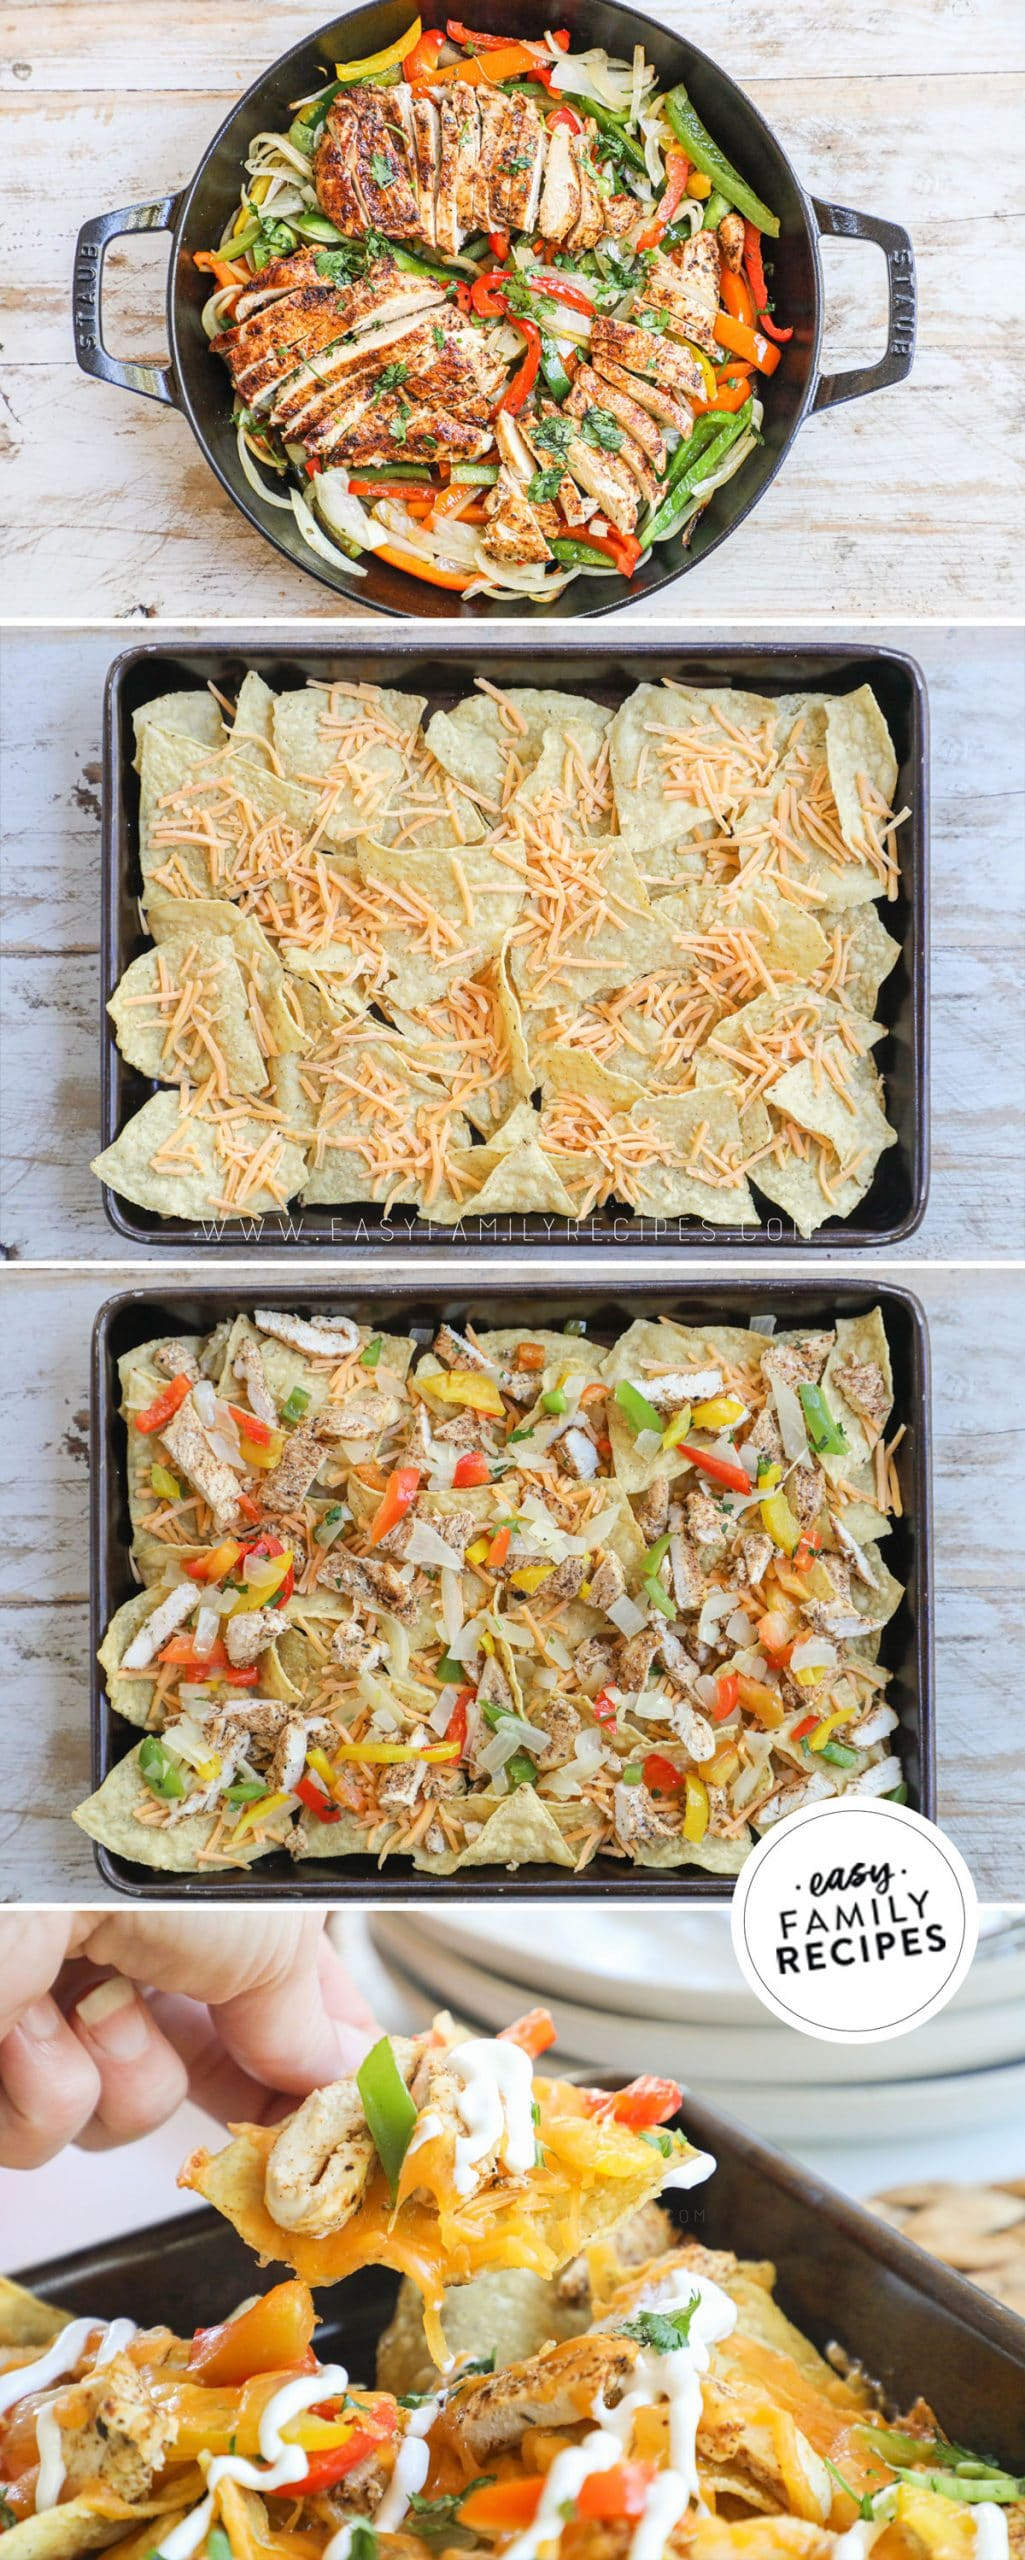 Process photos for how to make chicken fajita nachos 1.) prepare chicken fajita meat, 2. spread chips on a sheet pan. 3. Layer on cheese, chicken, peppers and onion. 4. Bake and top with pico de gallo, sour cream, and guacamole